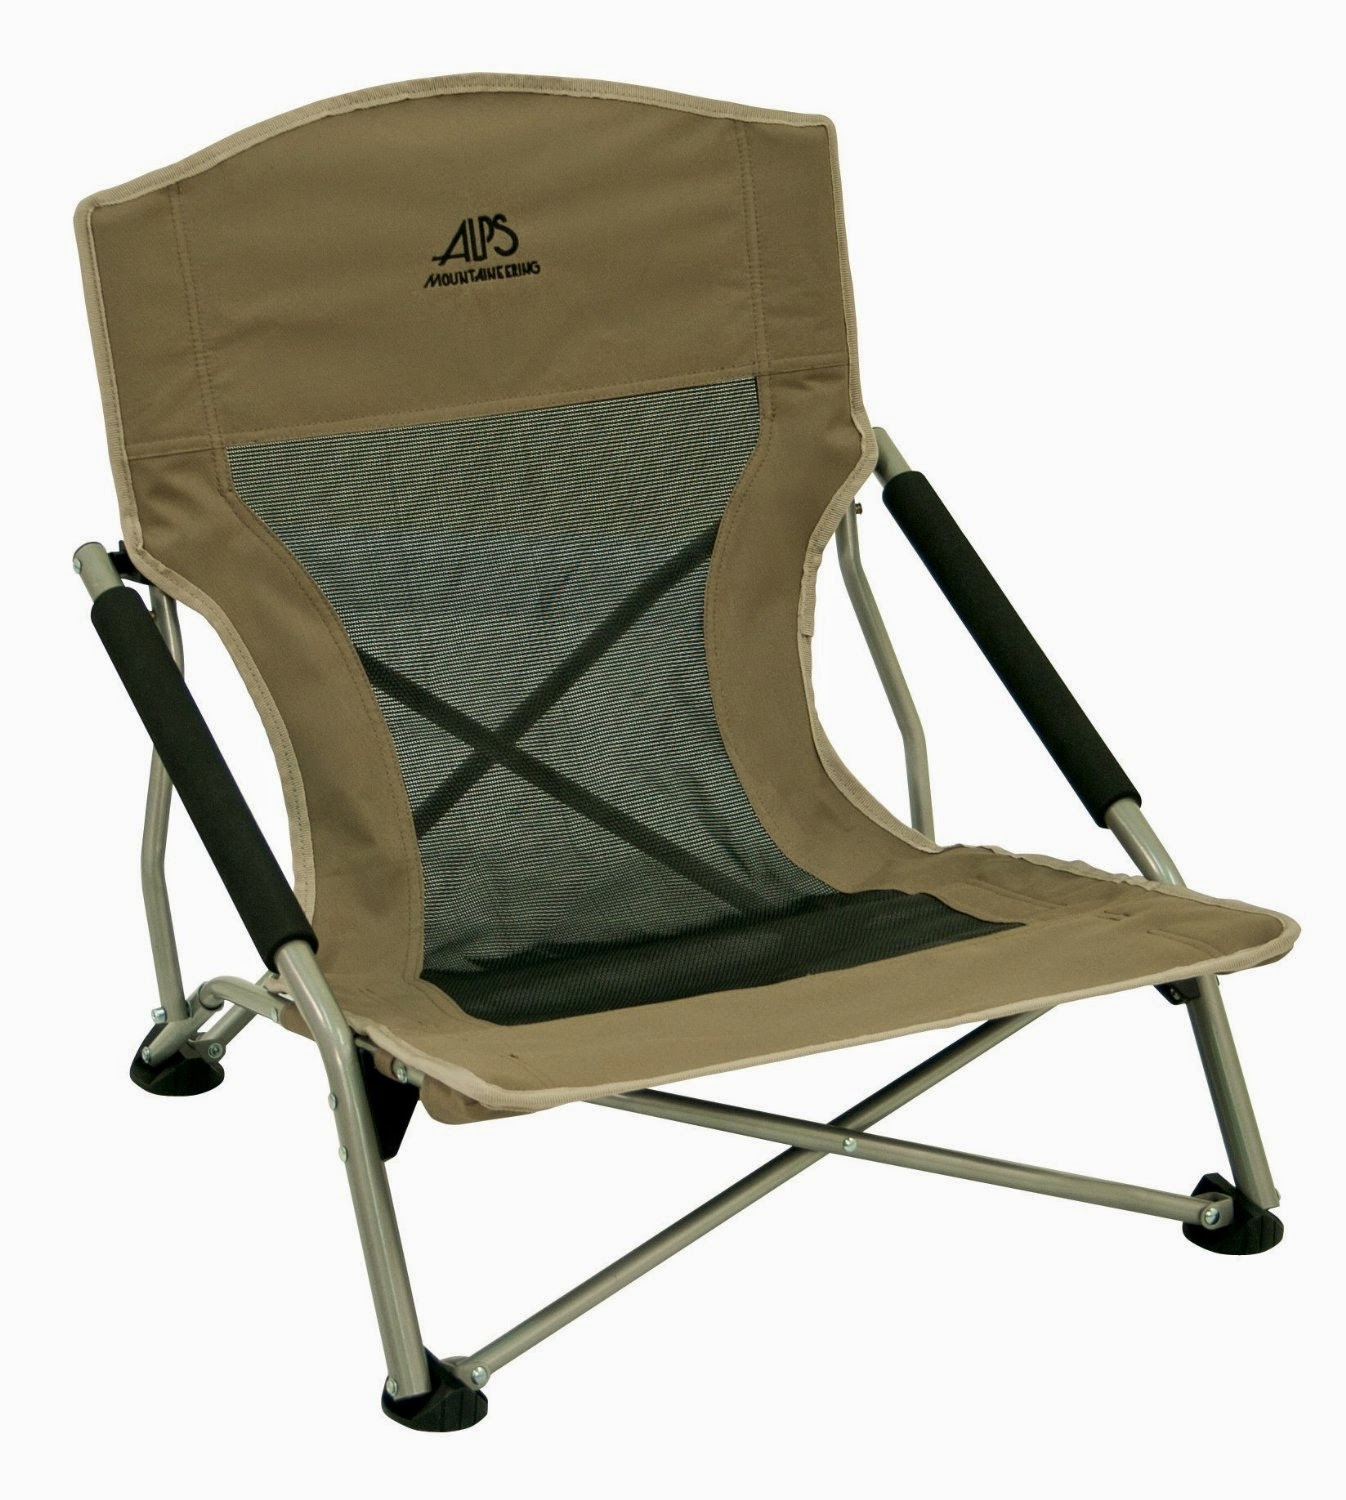 Best Inexpensive Beach Chairs Patio Bar And Tables Cheap March 2014